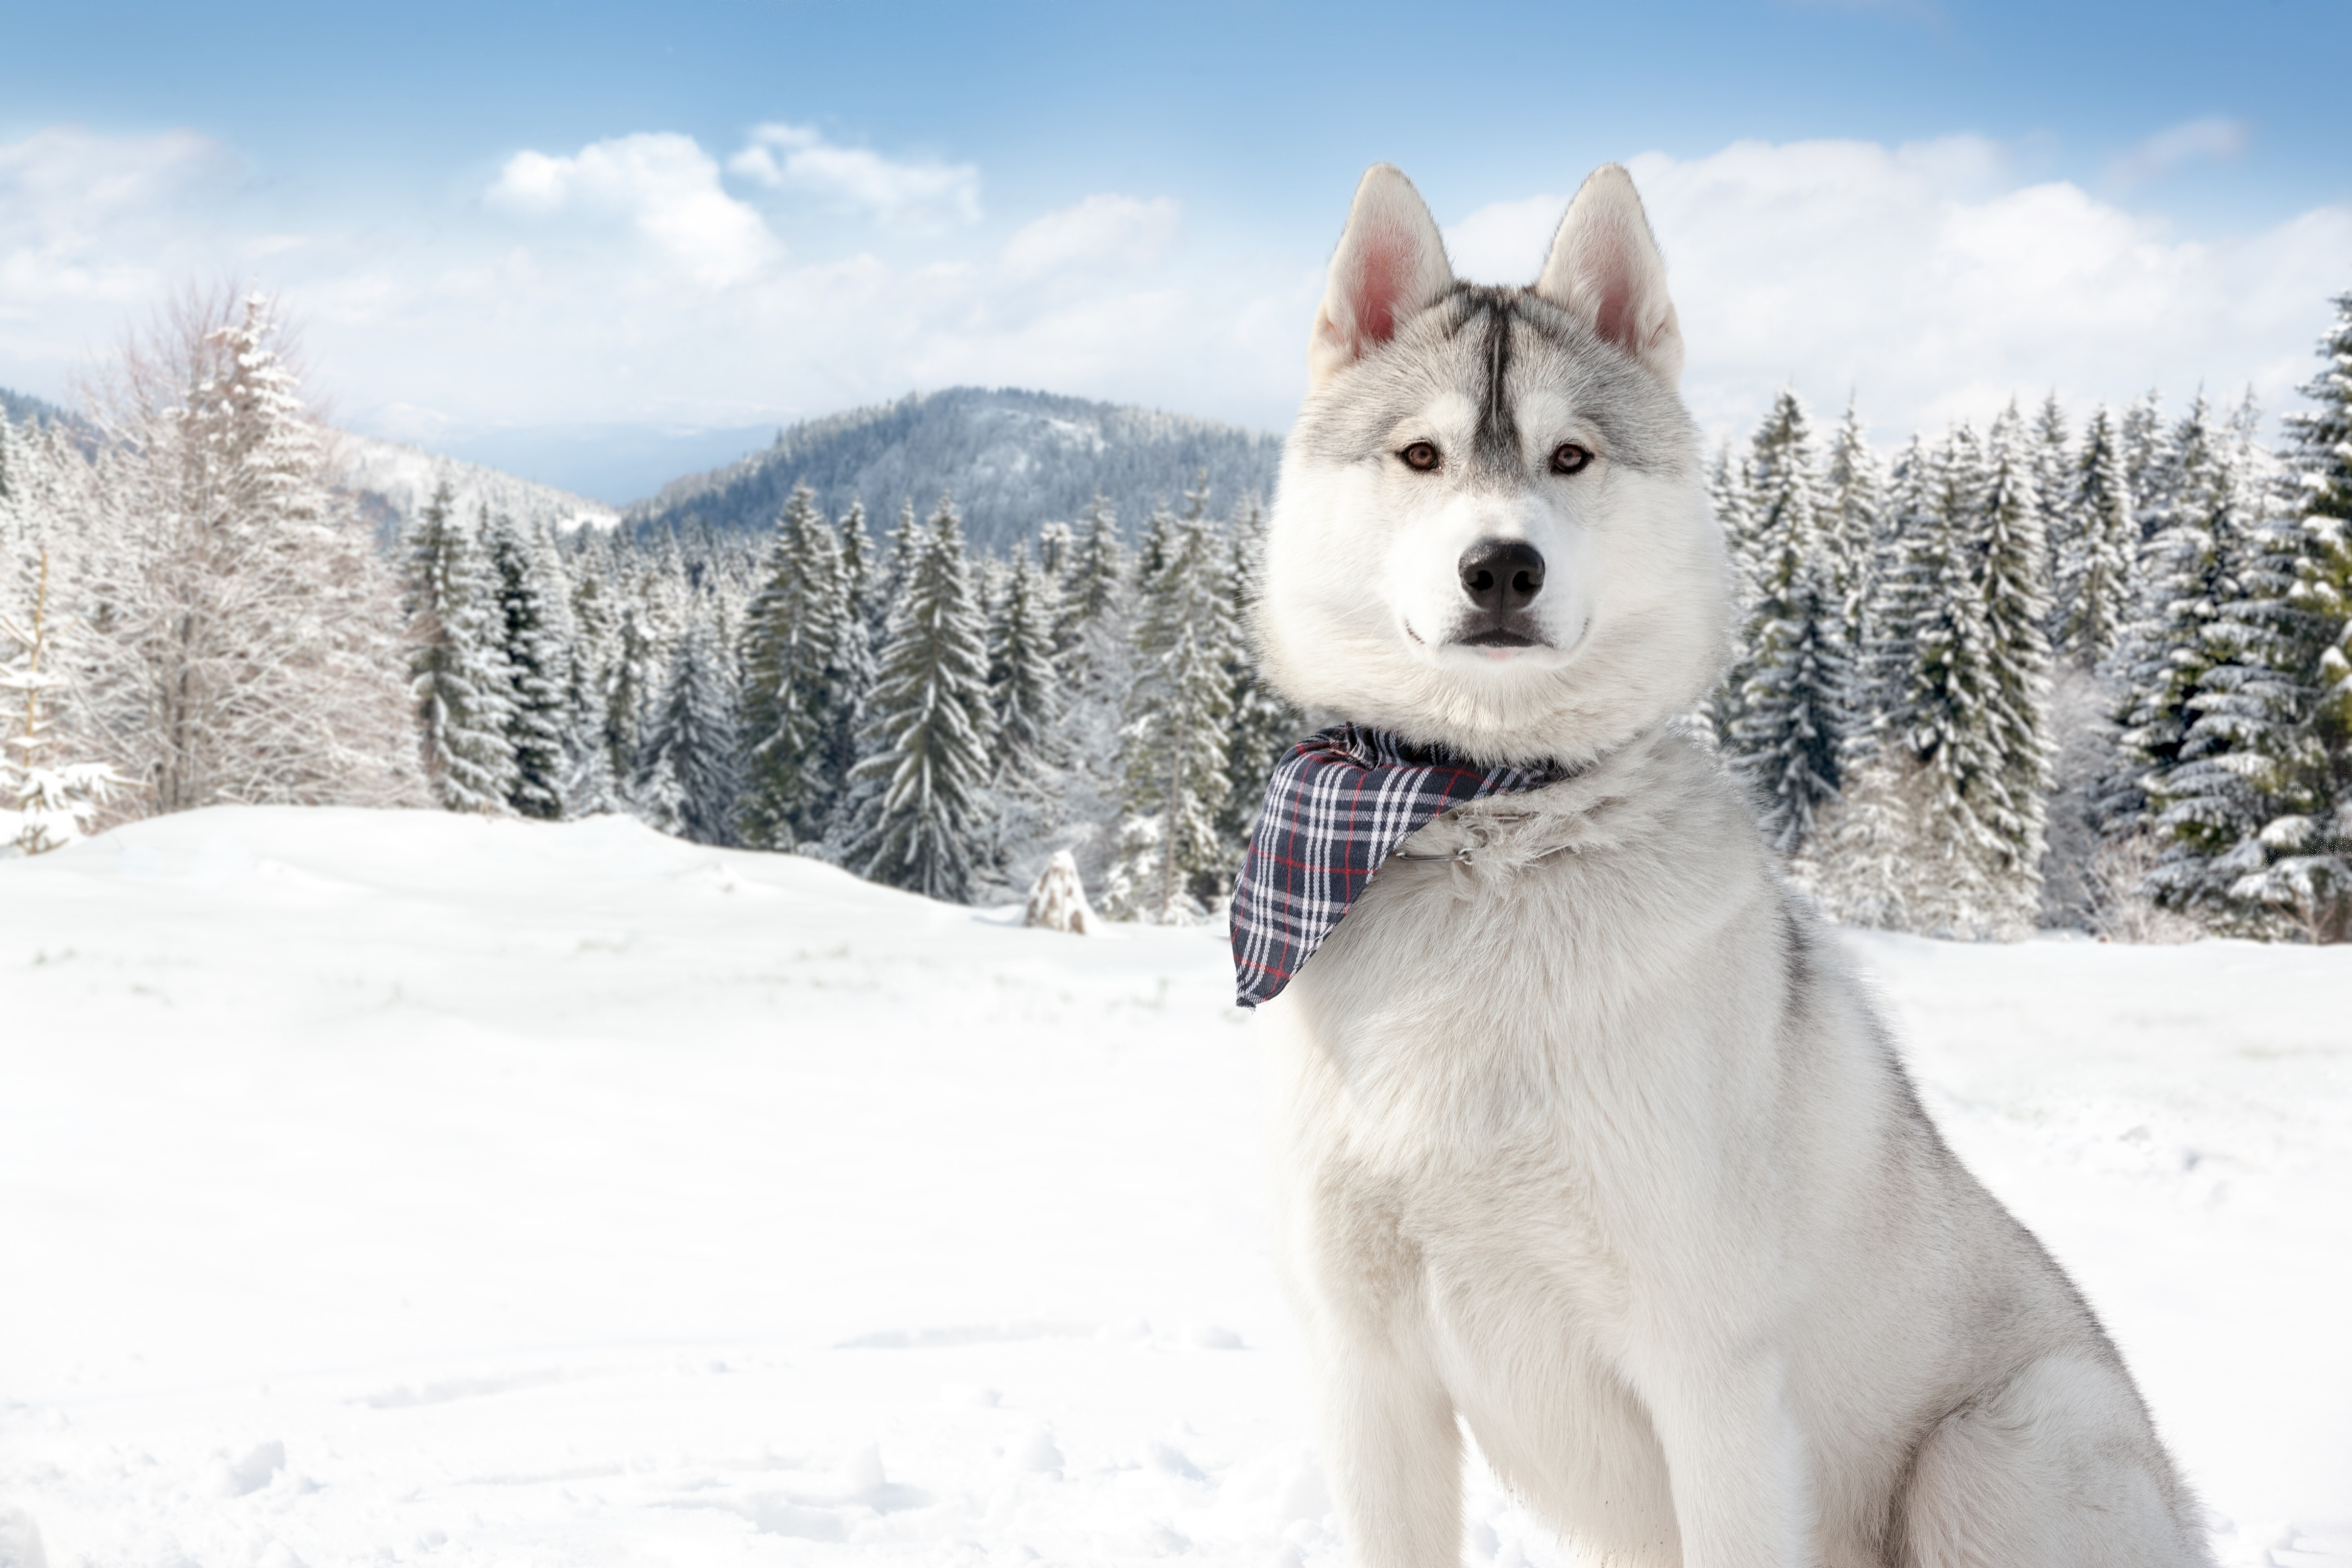 Cute Wallpapers Of Dogs And Puppies Wallpaper Huskies Dog Puppy Snow Forest Winter White